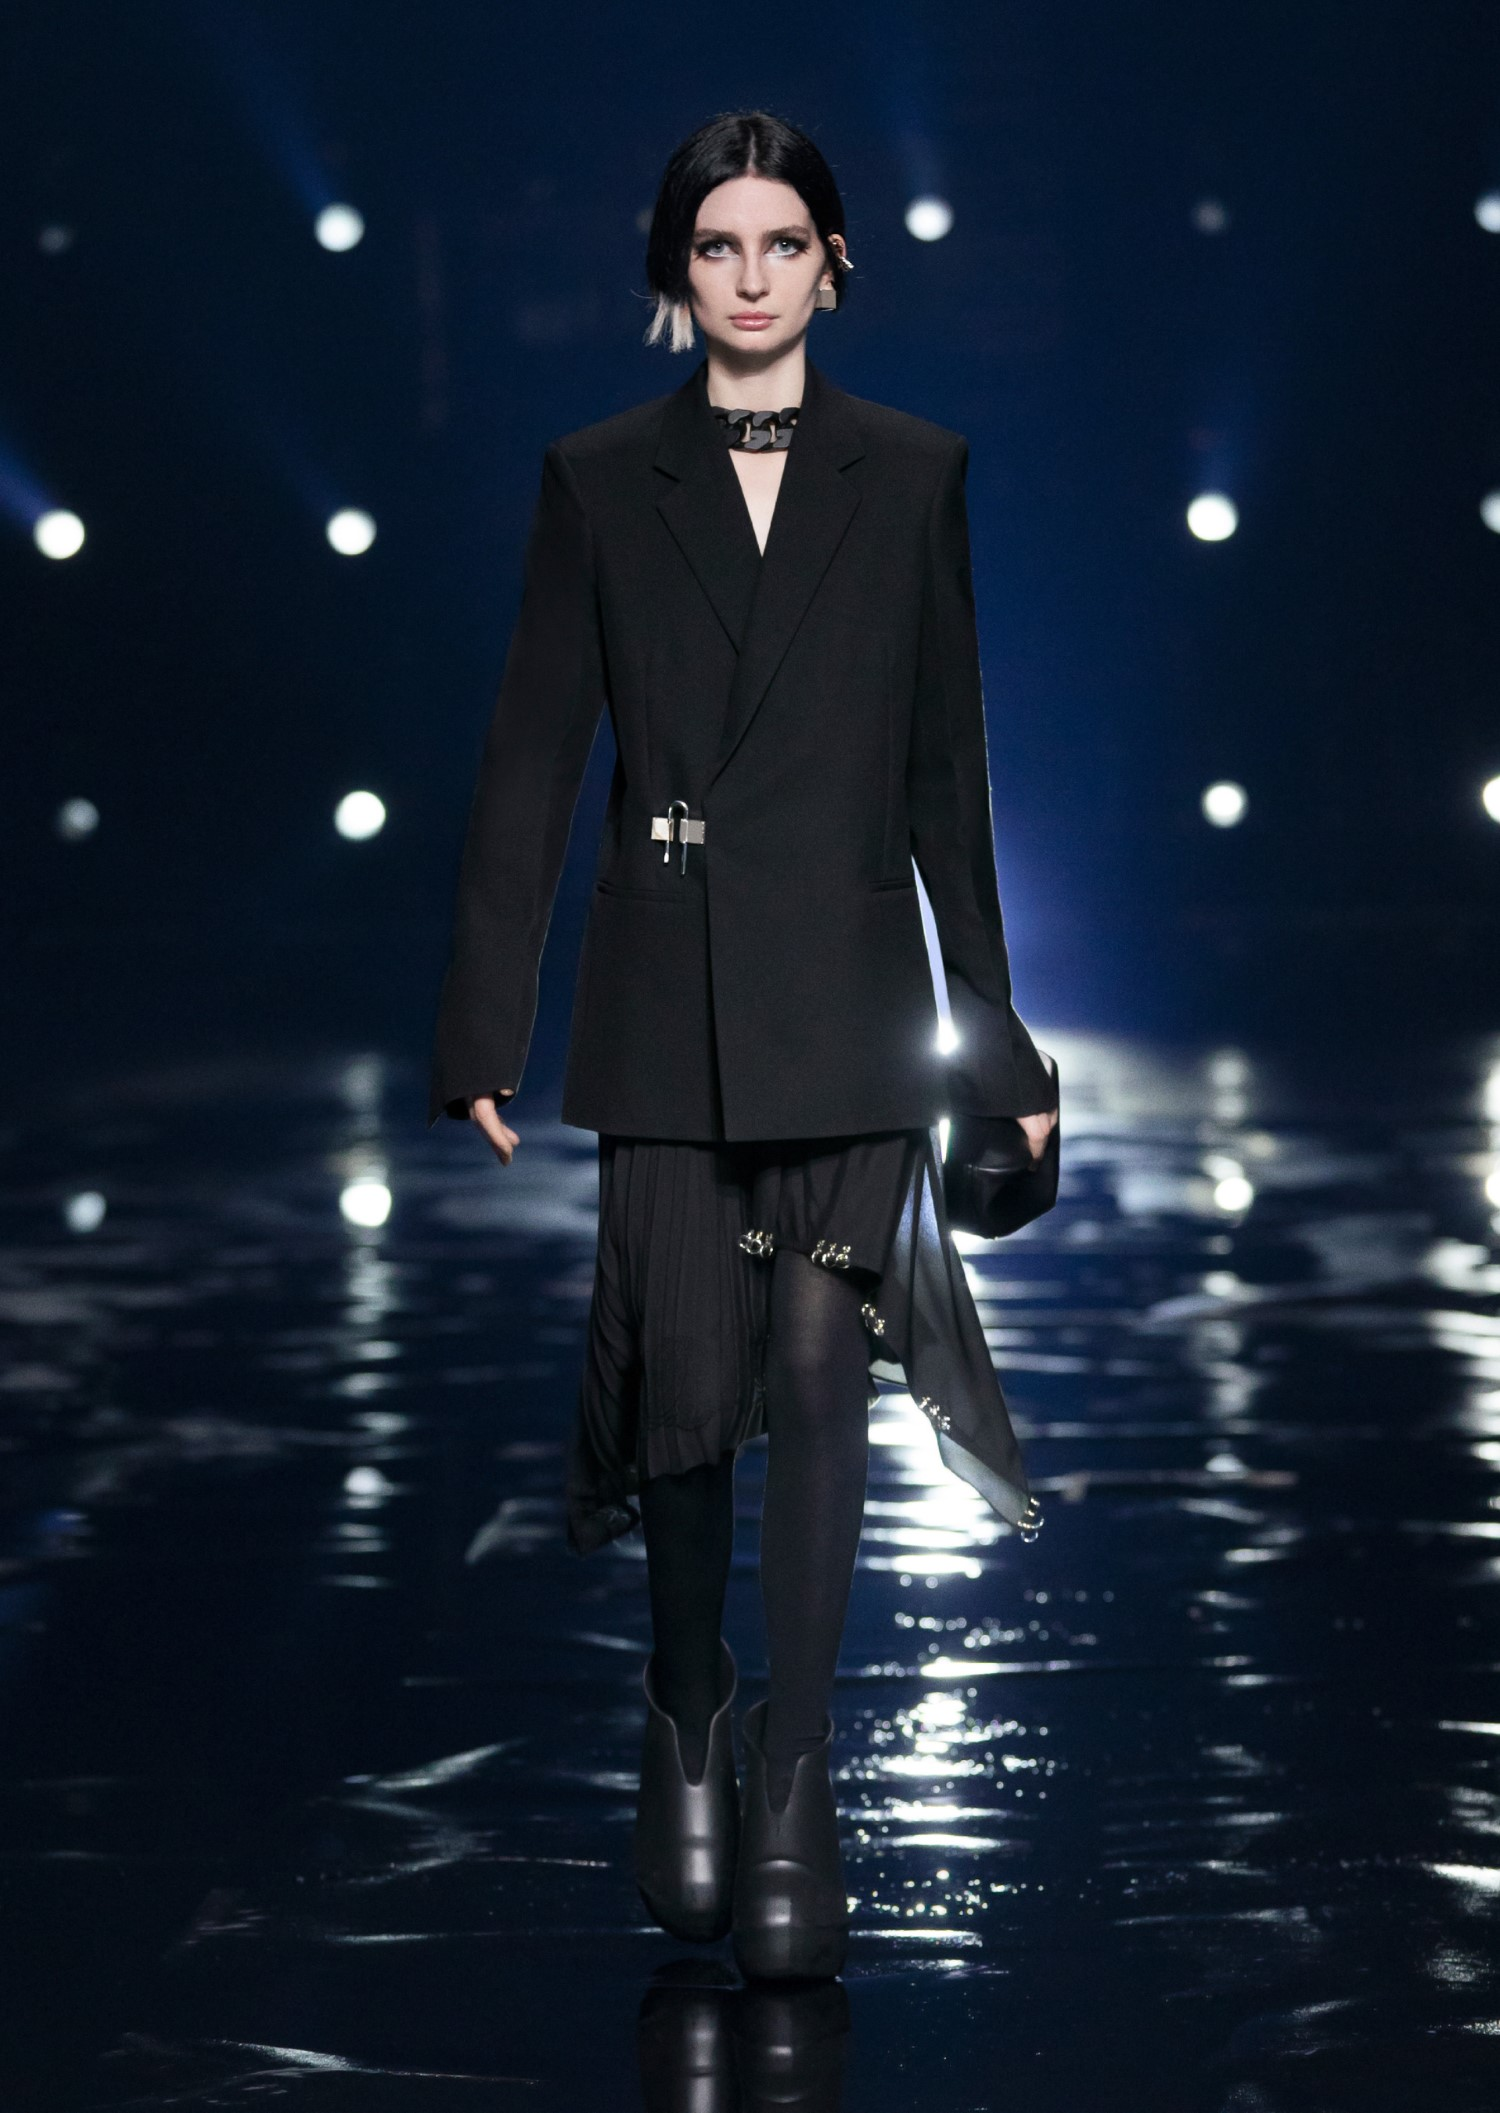 Givenchy Fall Winter 2021 - Paris Fashion Week